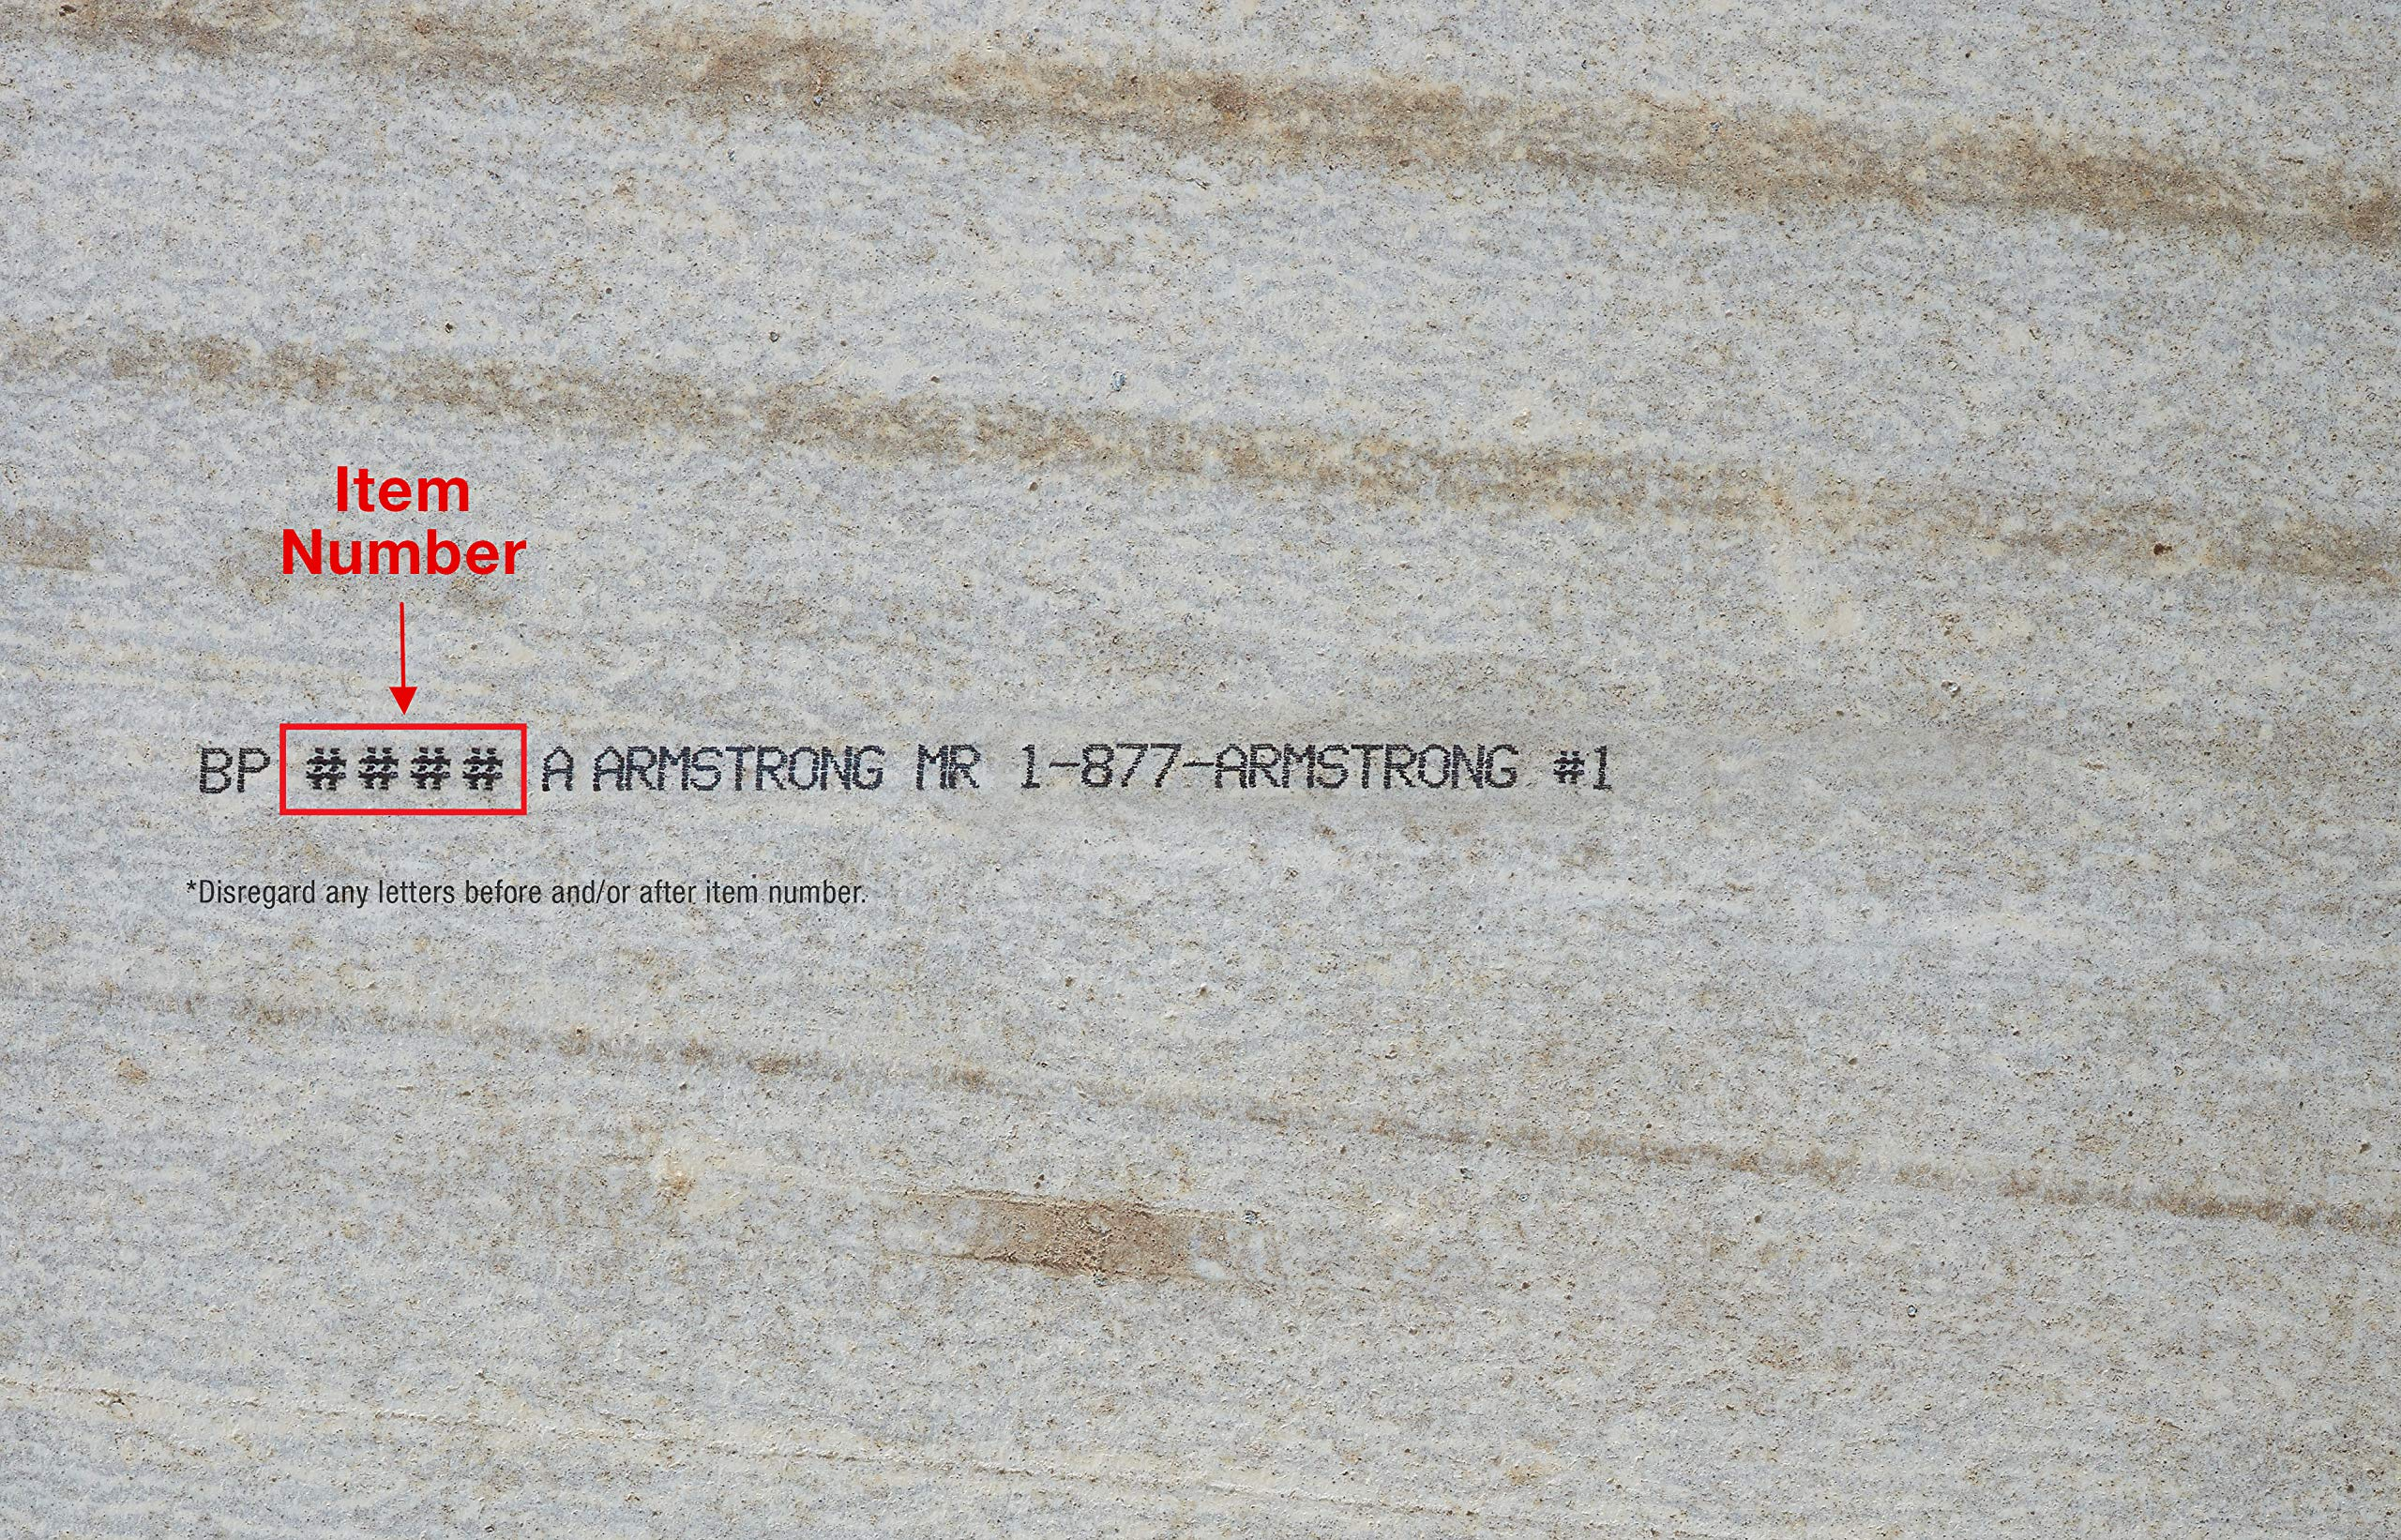 Armstrong Ceiling Tiles; 2x2 Ceiling Tiles - Acoustic Ceilings for Suspended Ceiling Grid; Drop Ceiling Tiles Direct from the Manufacturer; CORTEGA Item 704 - 16 pc White Tegular by Armstrong (Image #4)